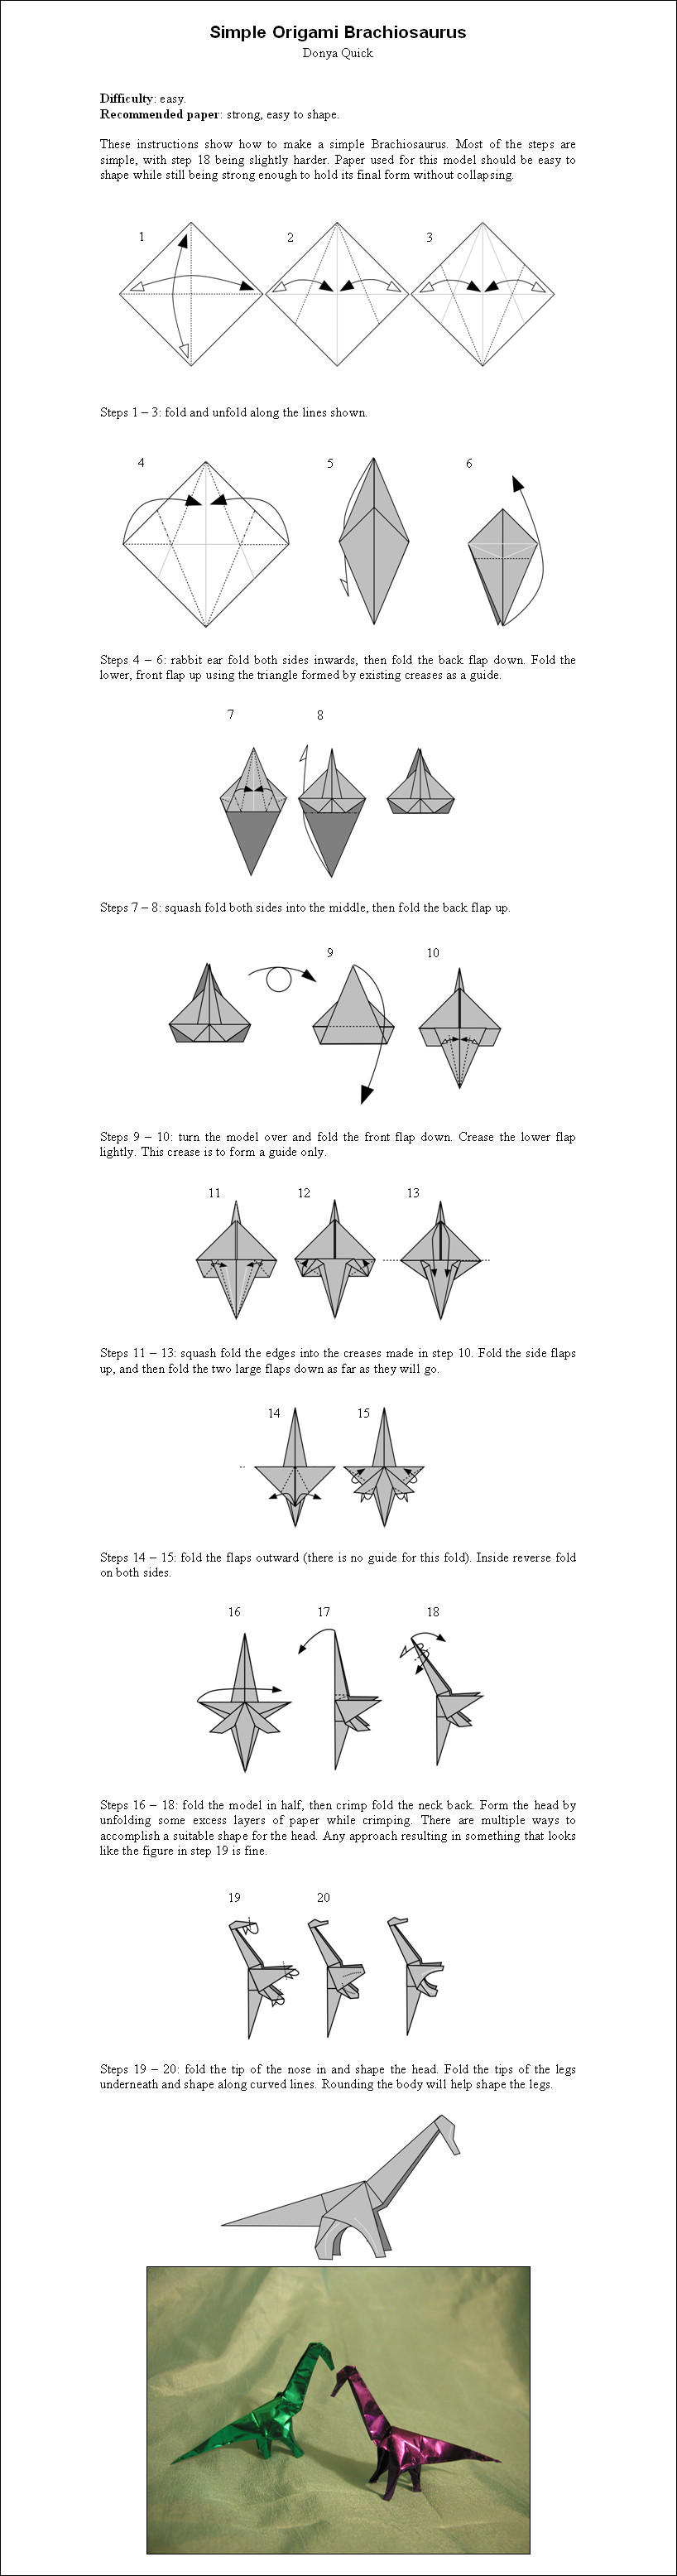 how to make an origami dinosaur step by step